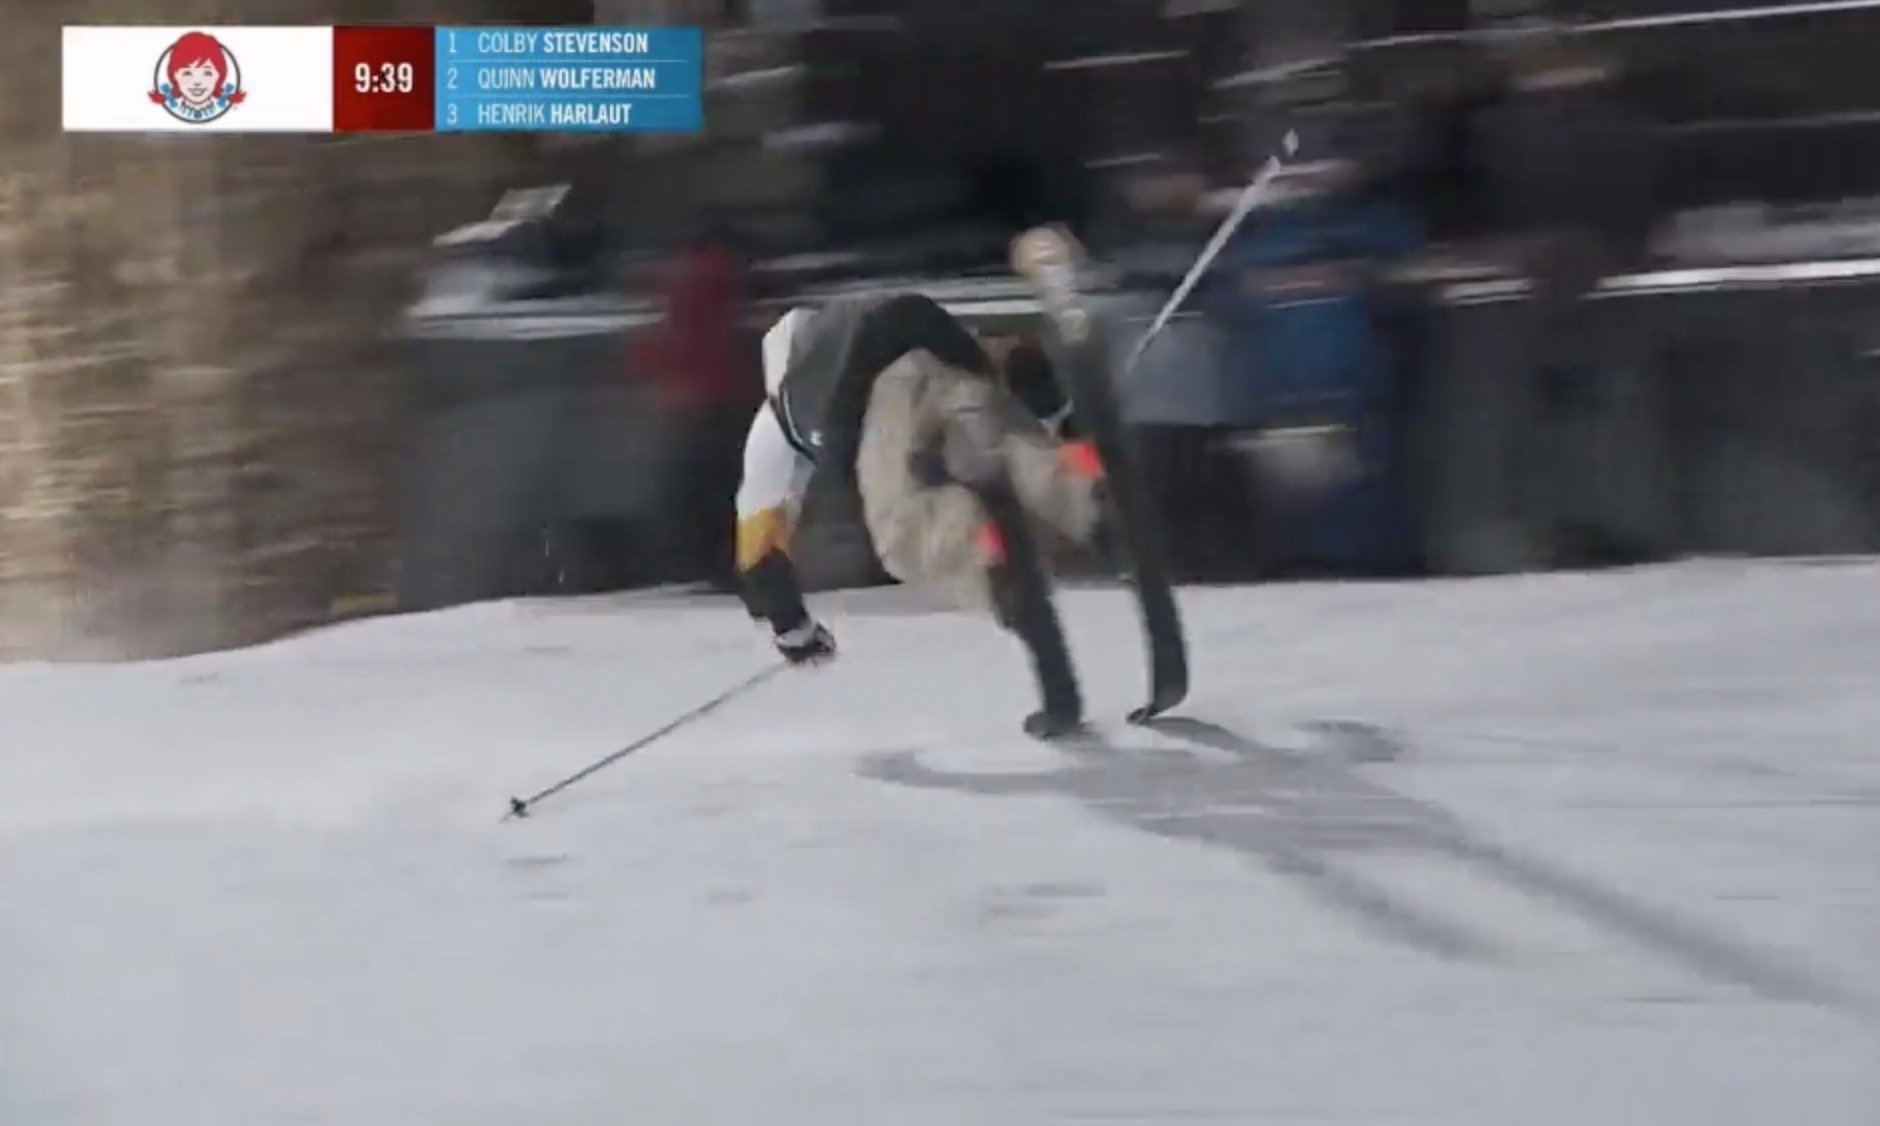 This Insane Ski Trick Doesn't Even Look Real